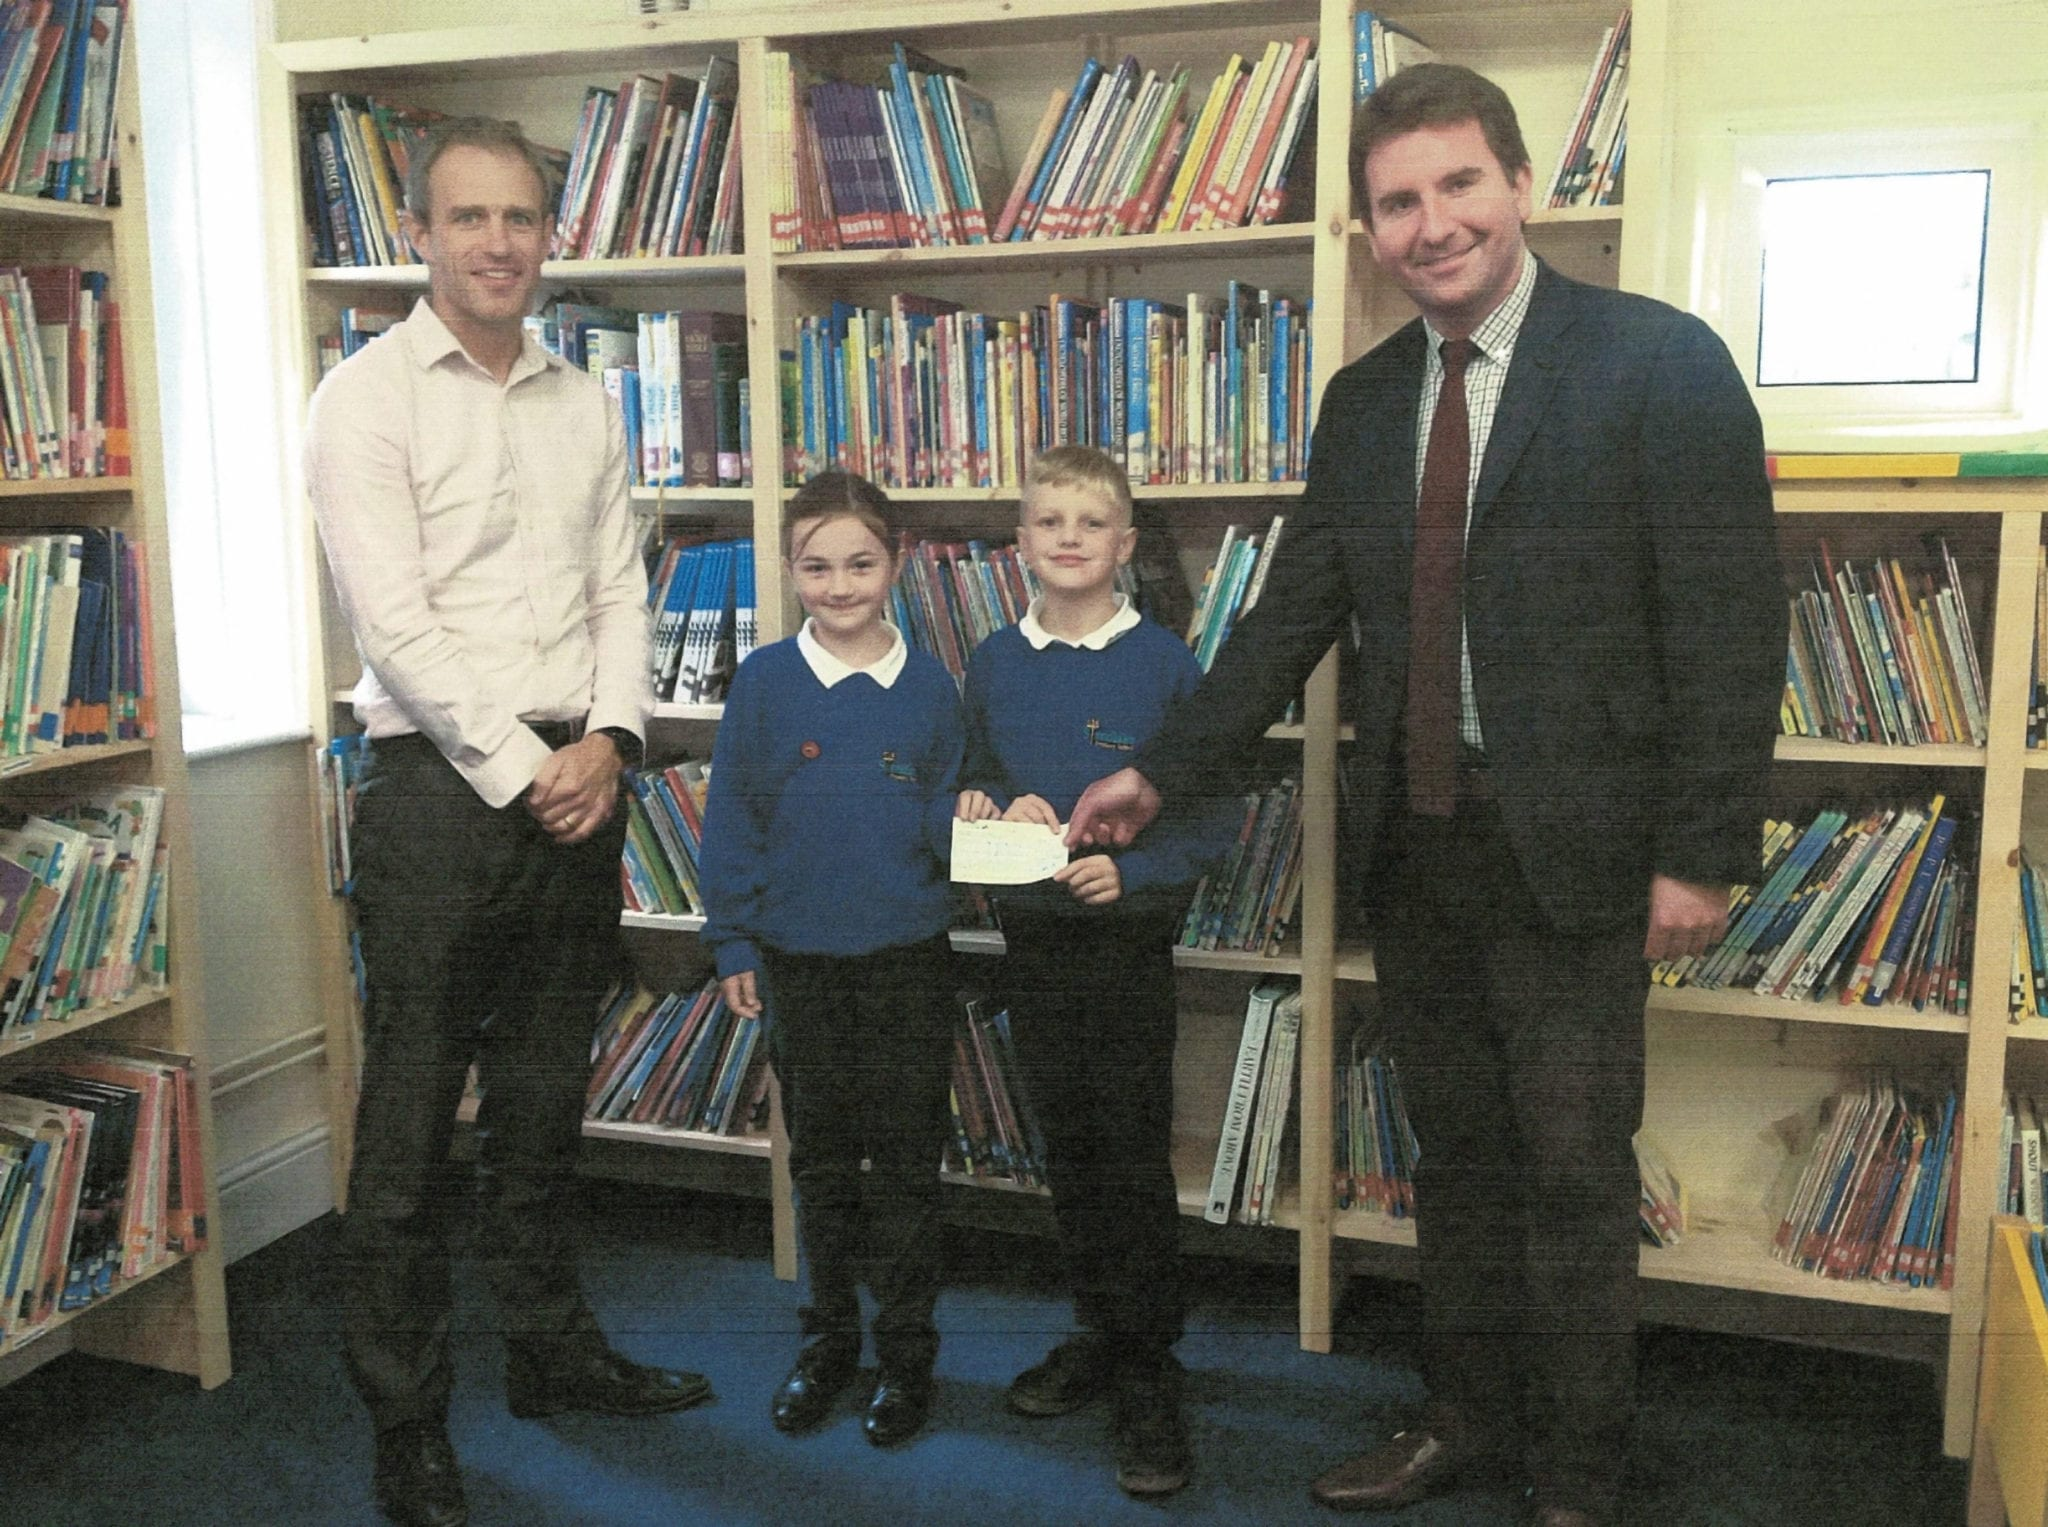 Lincoln Farm Park - Standlake Primary School receives a £2,500 donation from James Cooper